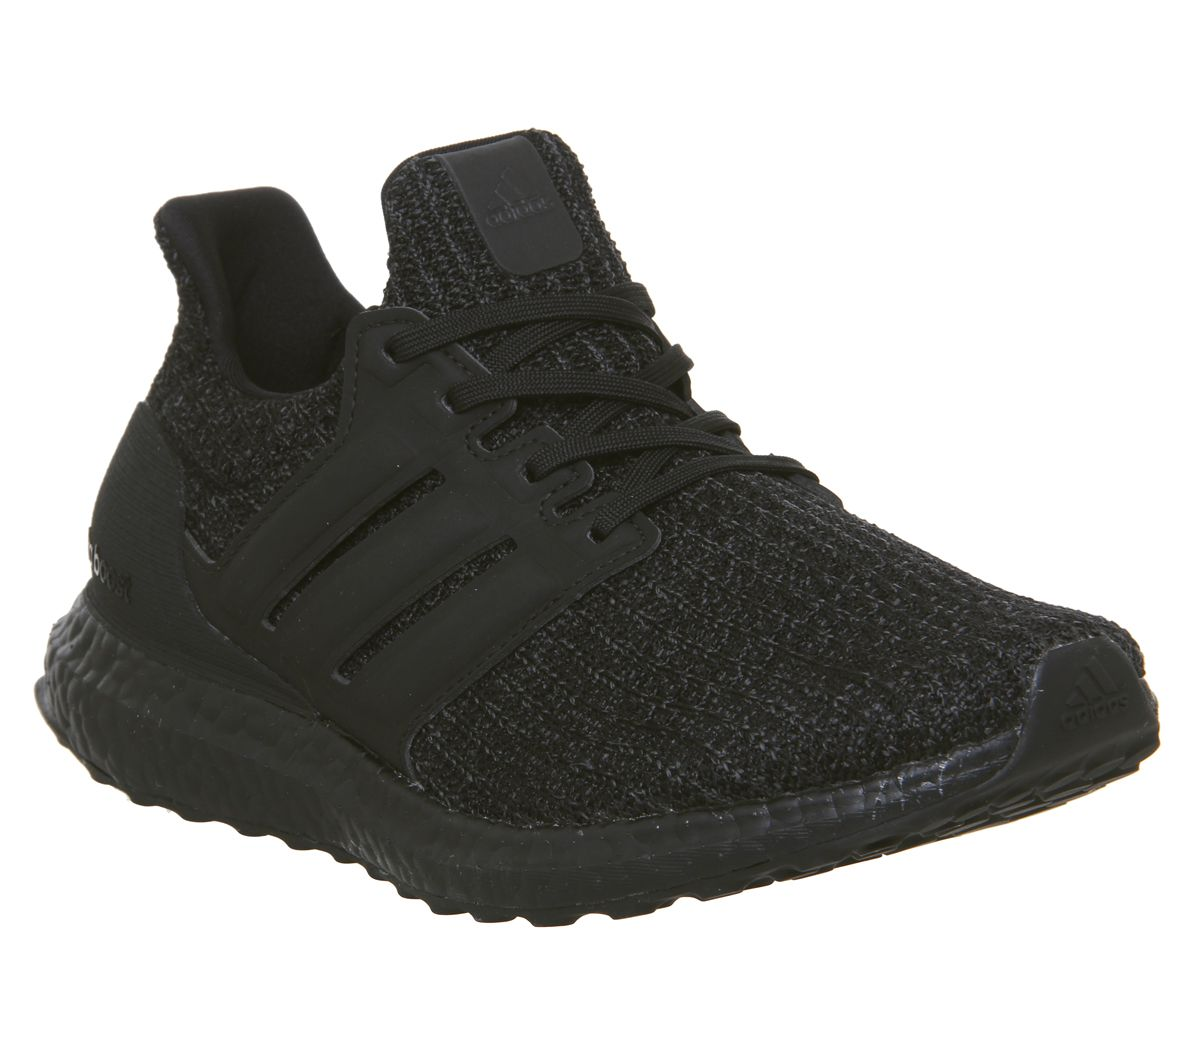 d8758166cee47 adidas Ultraboost Ultra Boost Trainers Core Black Active Red ...